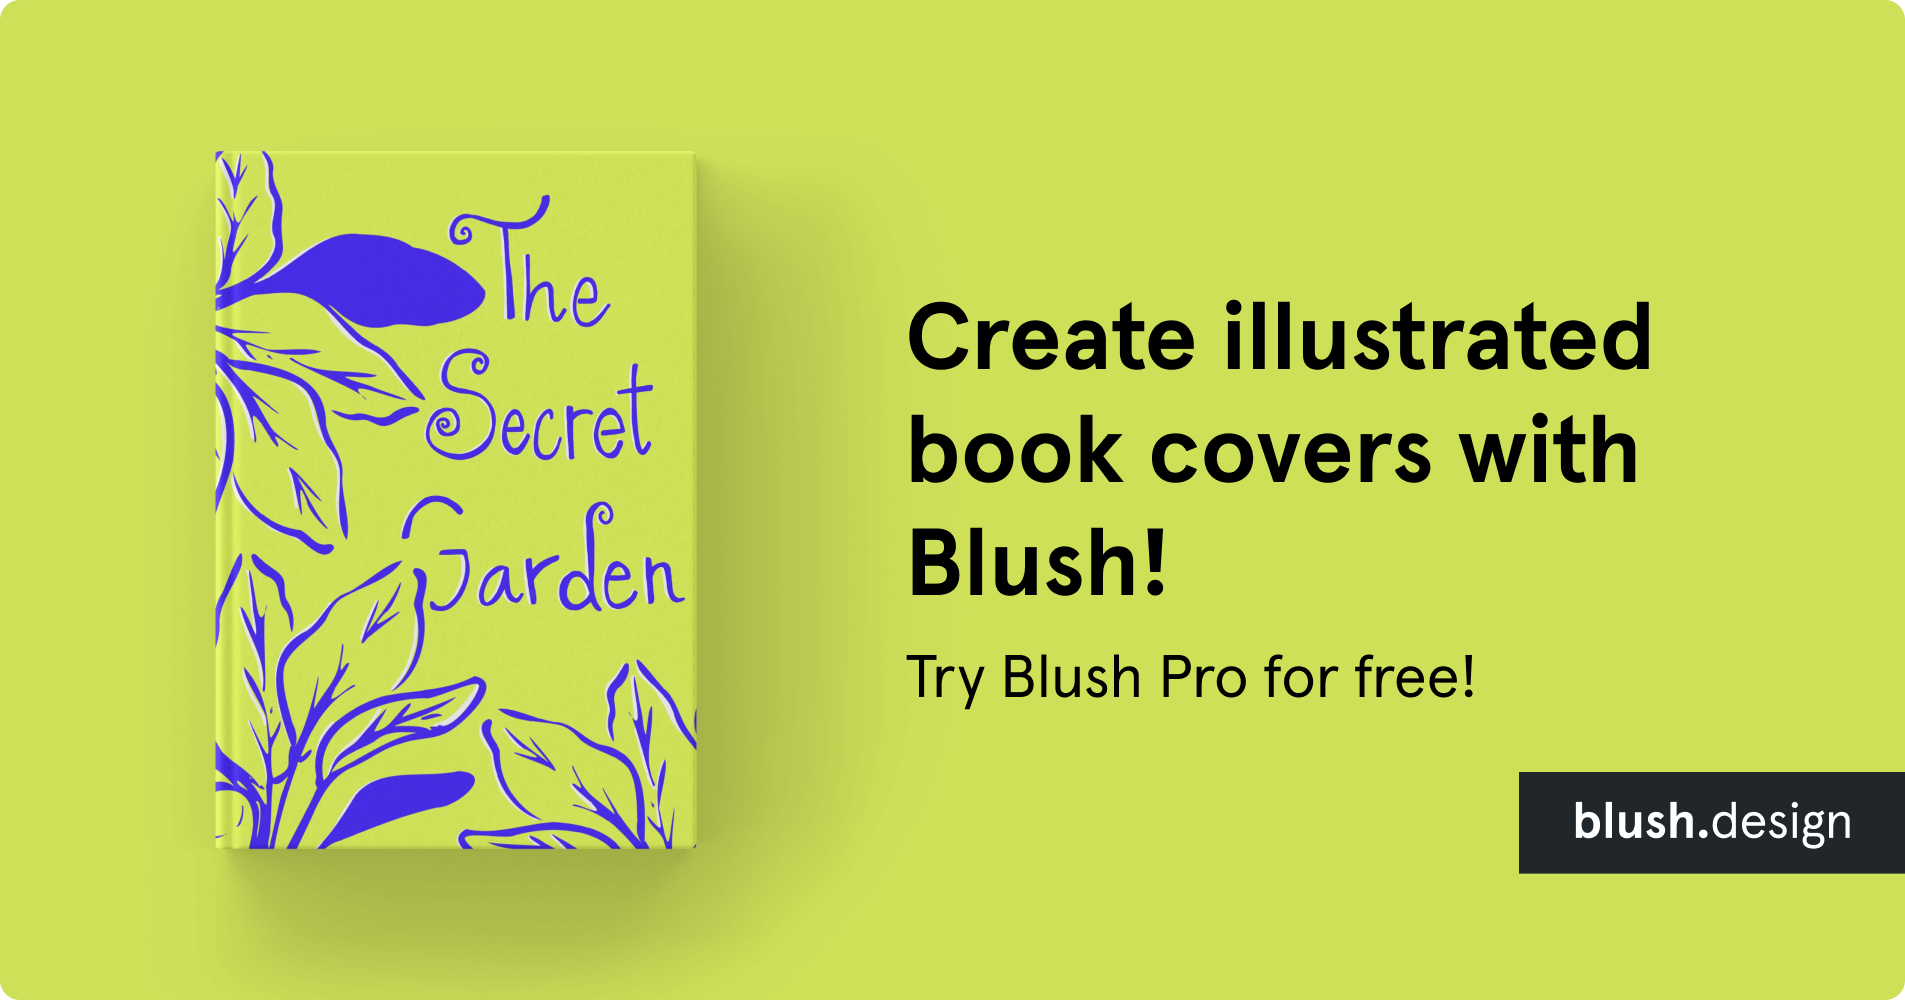 Create illustrated book covers with Blush! Try Blush Pro for free!